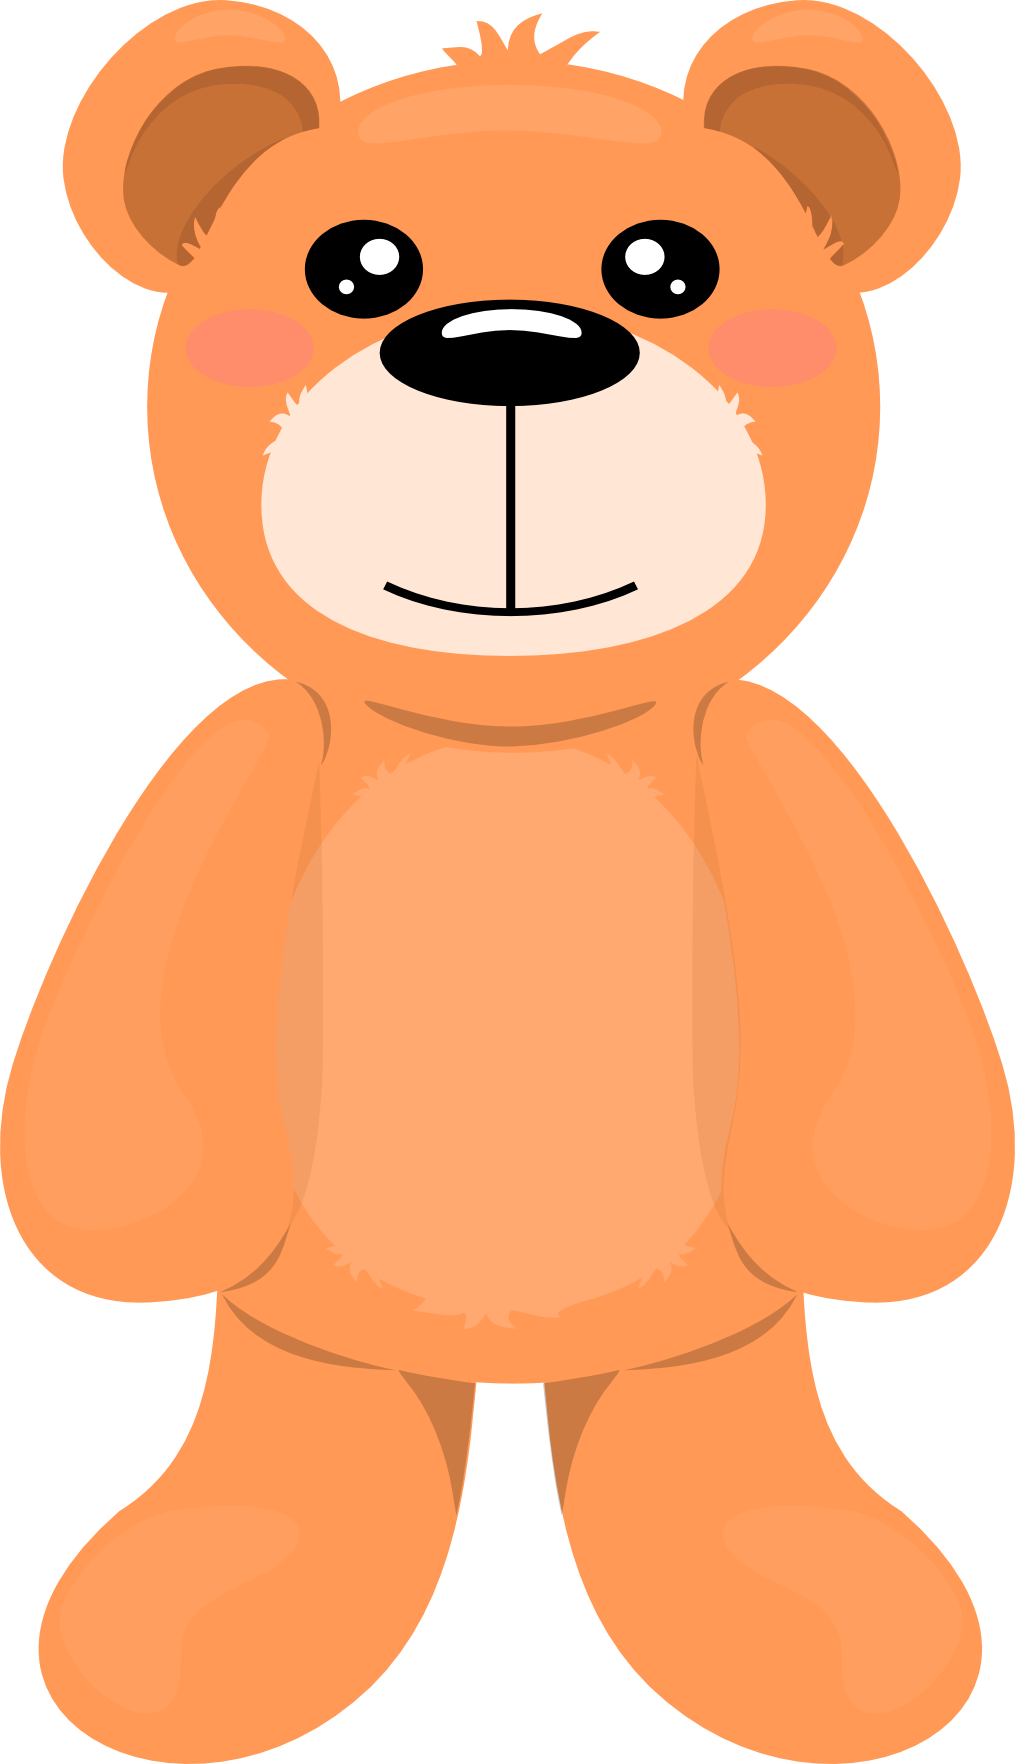 image royalty free Cute teddy bear clipart. Mixed clip art pinterest